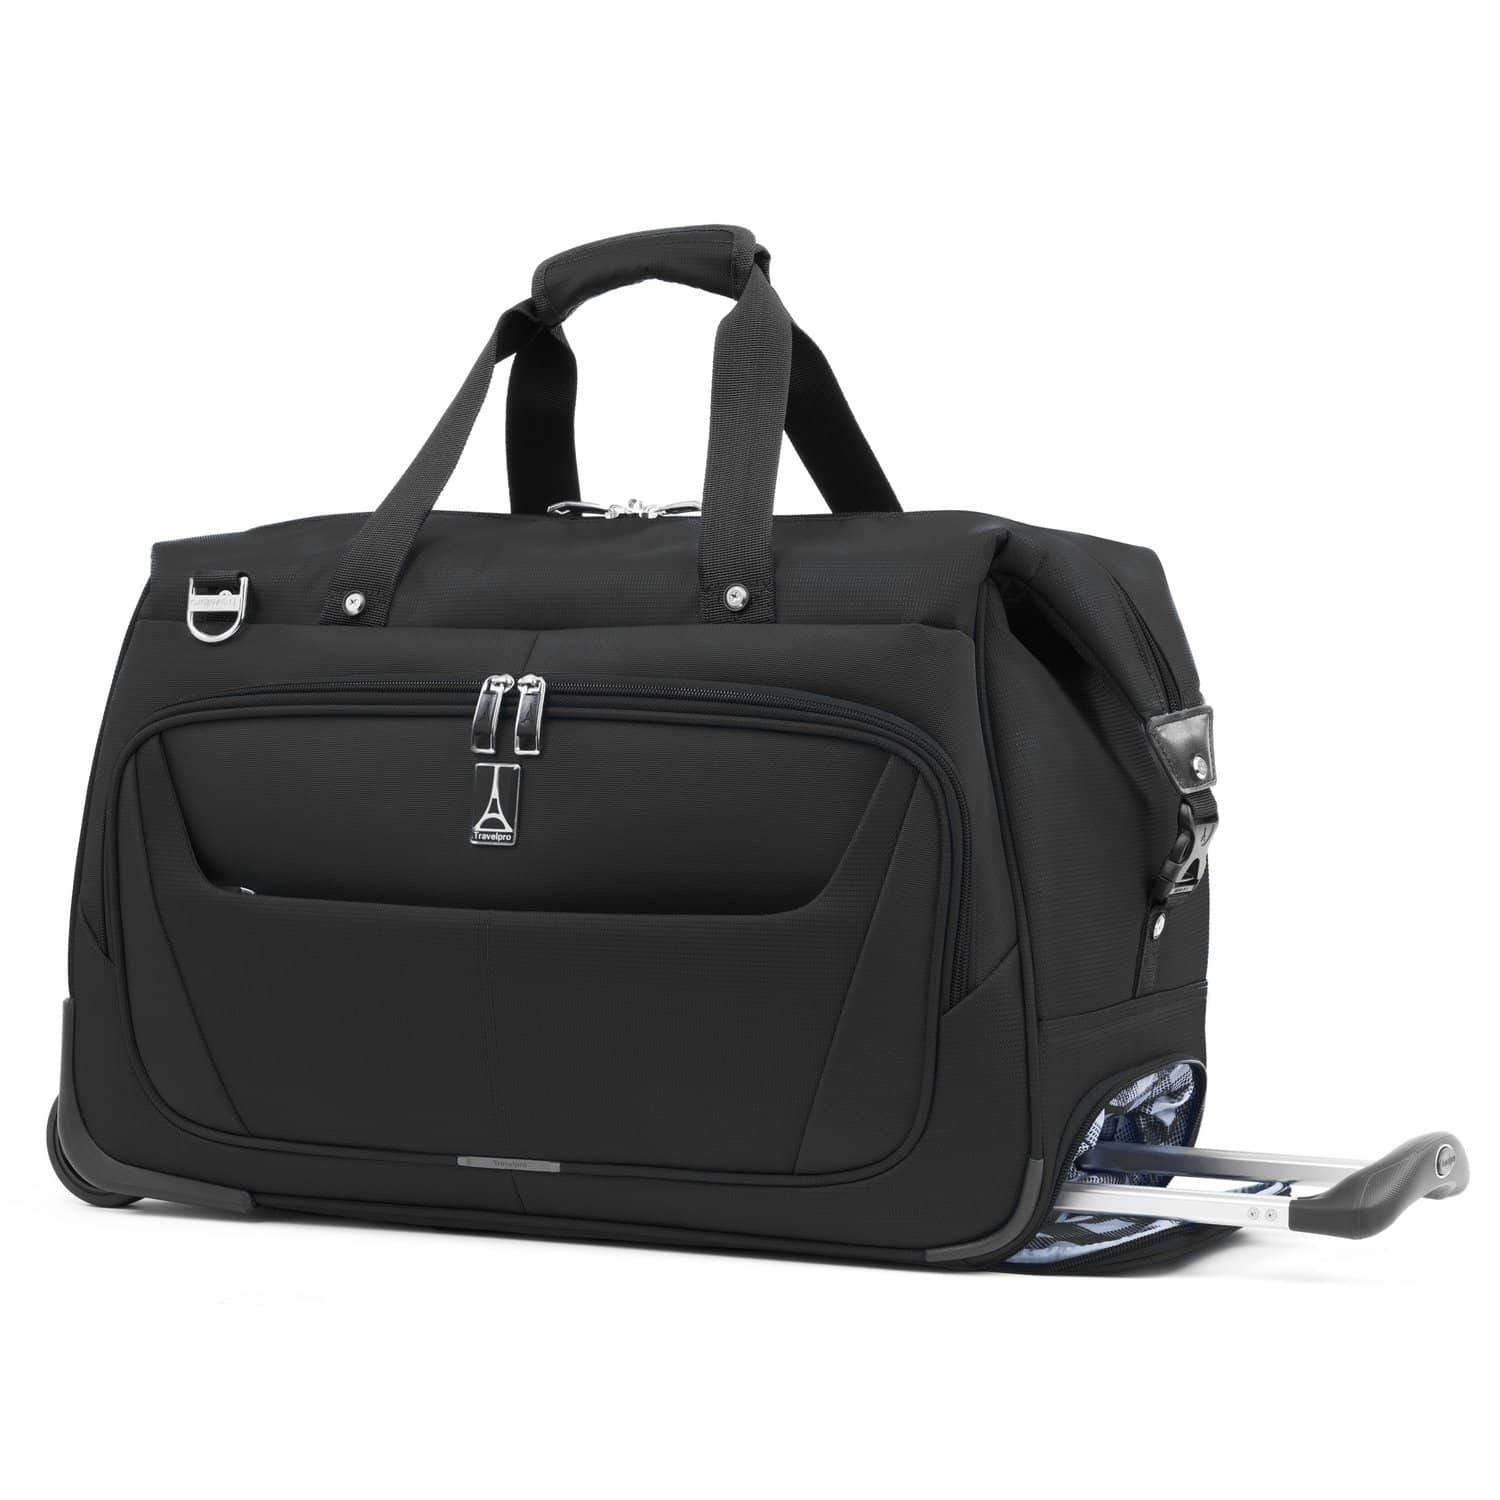 Travelpro Maxlite® 5 Carry-on Rolling Duffel BLACK